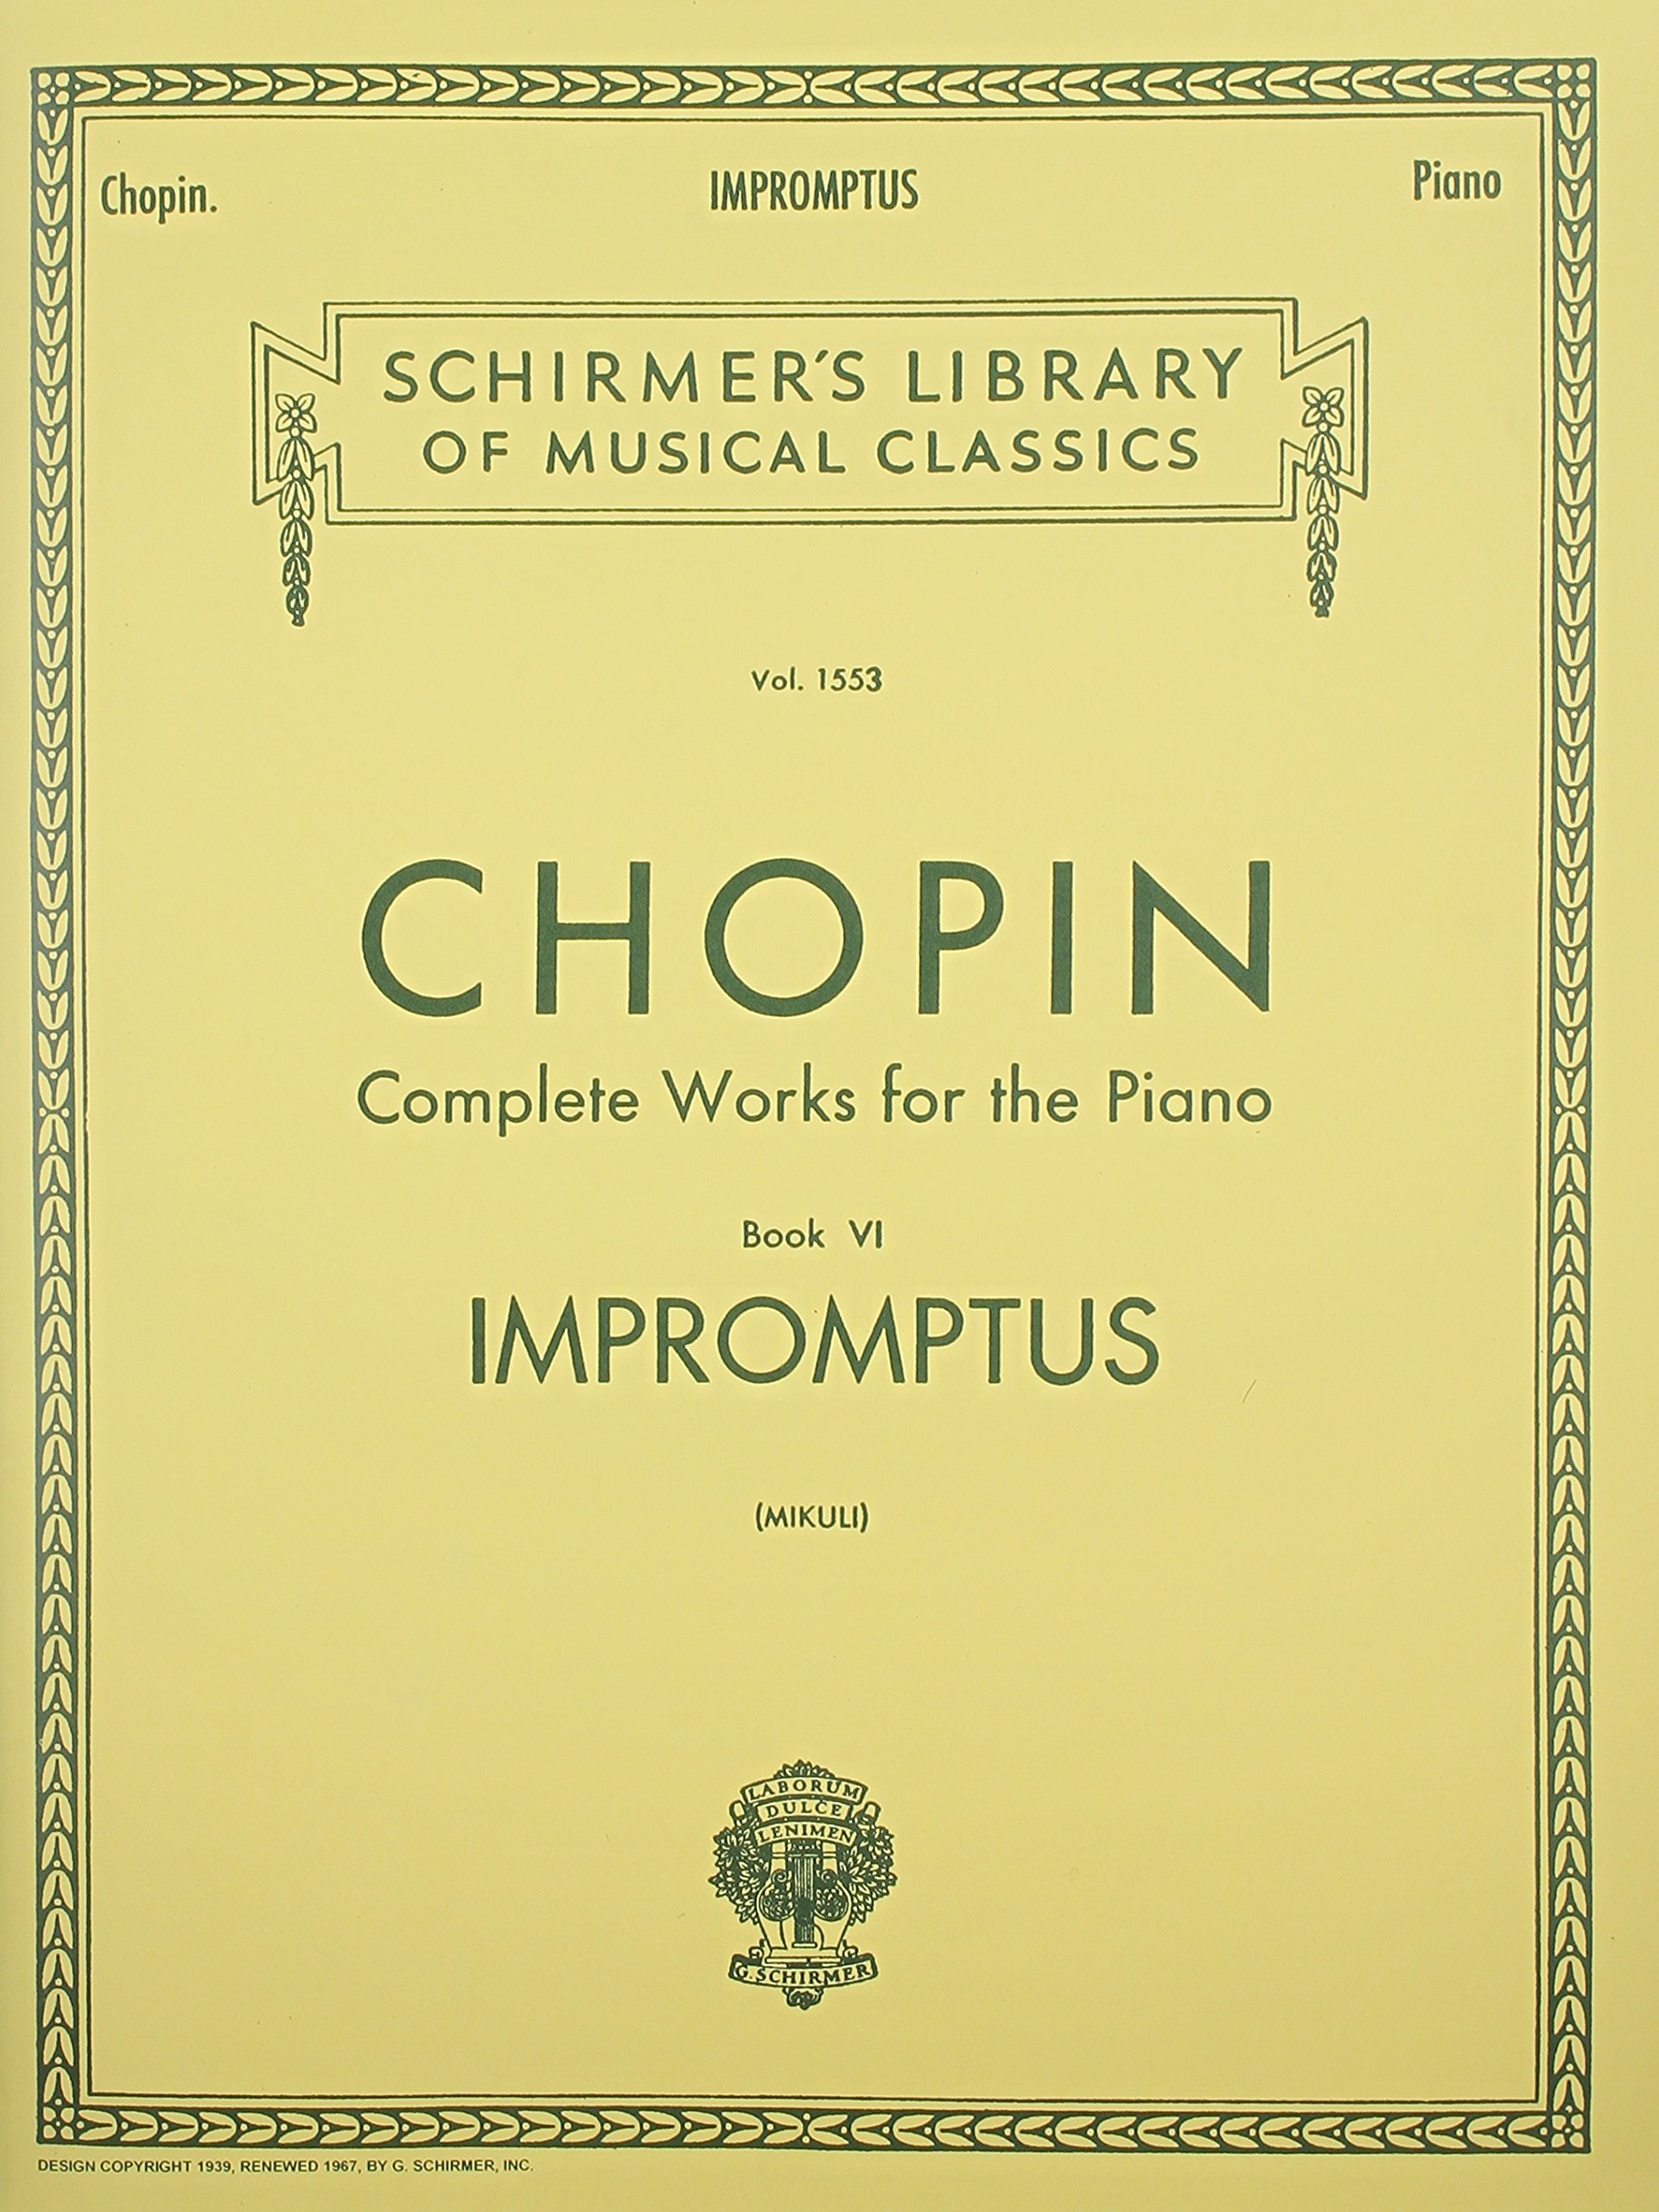 Impromptus: Complete Works for the Piano, Book 6 (Schirmer's Library of Musical  Classics, Vol. 1553): C. Mikuli, Frederic Chopin: 0073999454604:  Amazon.com: ...